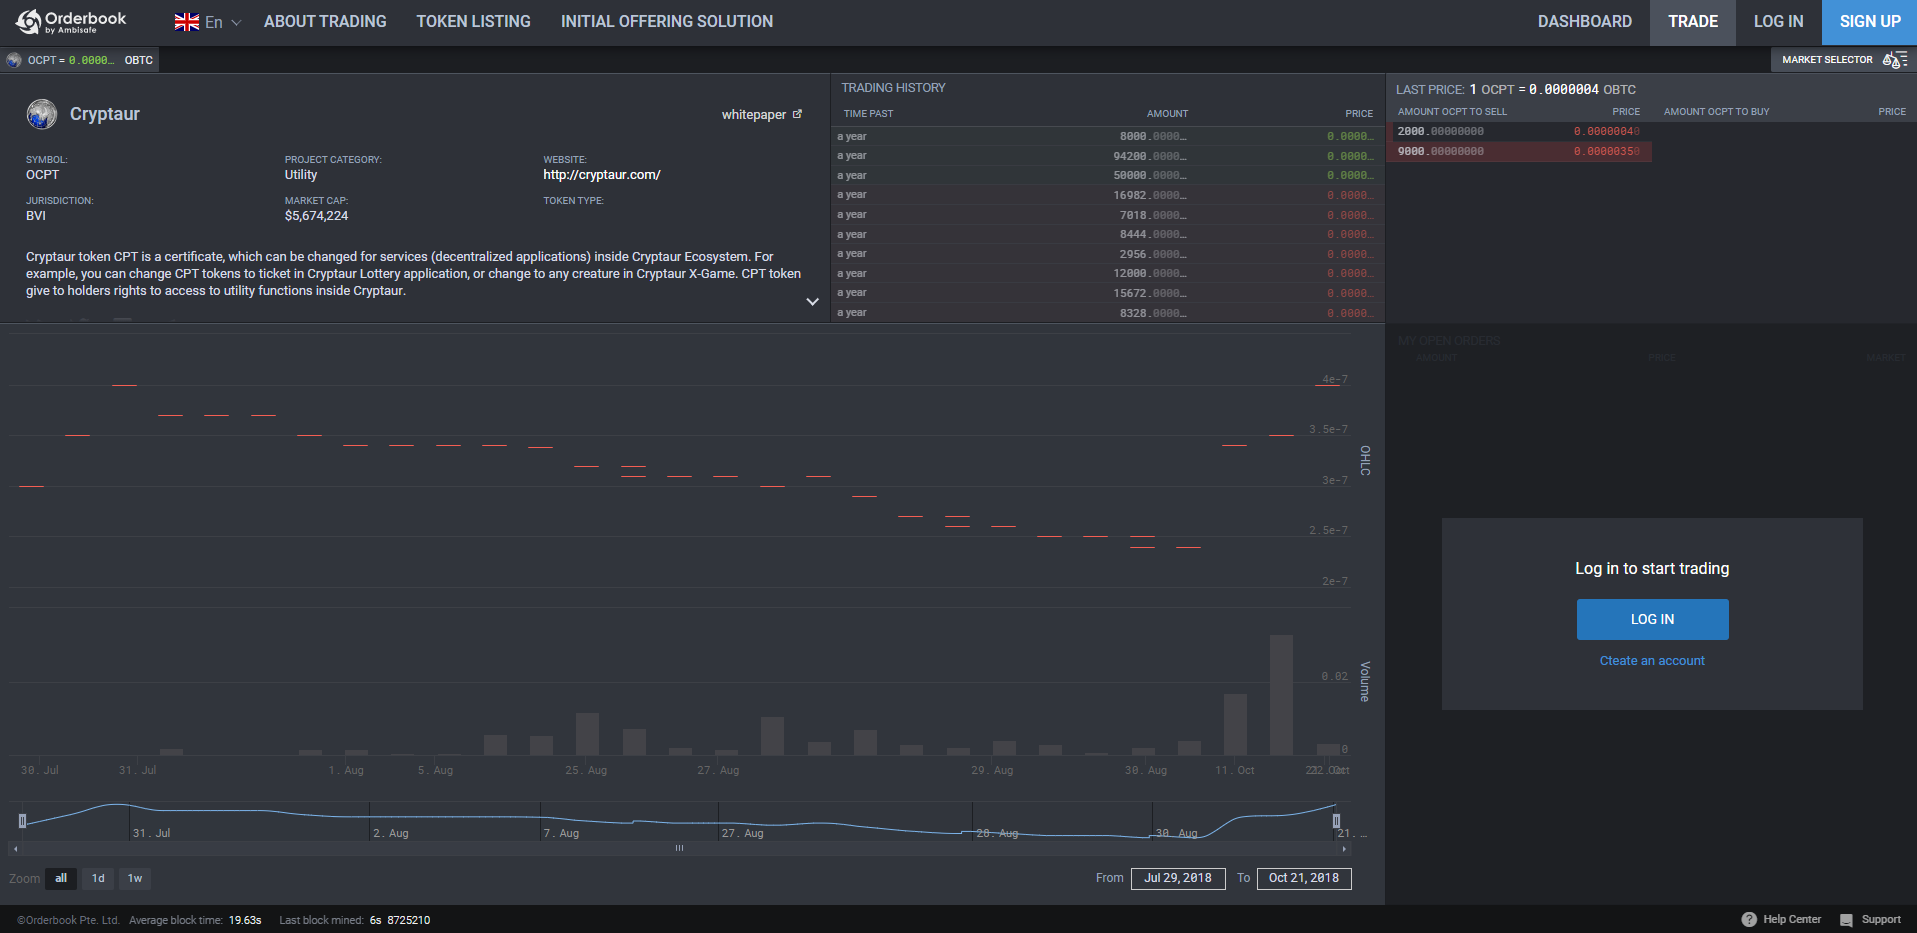 Orderbook.io Trading View